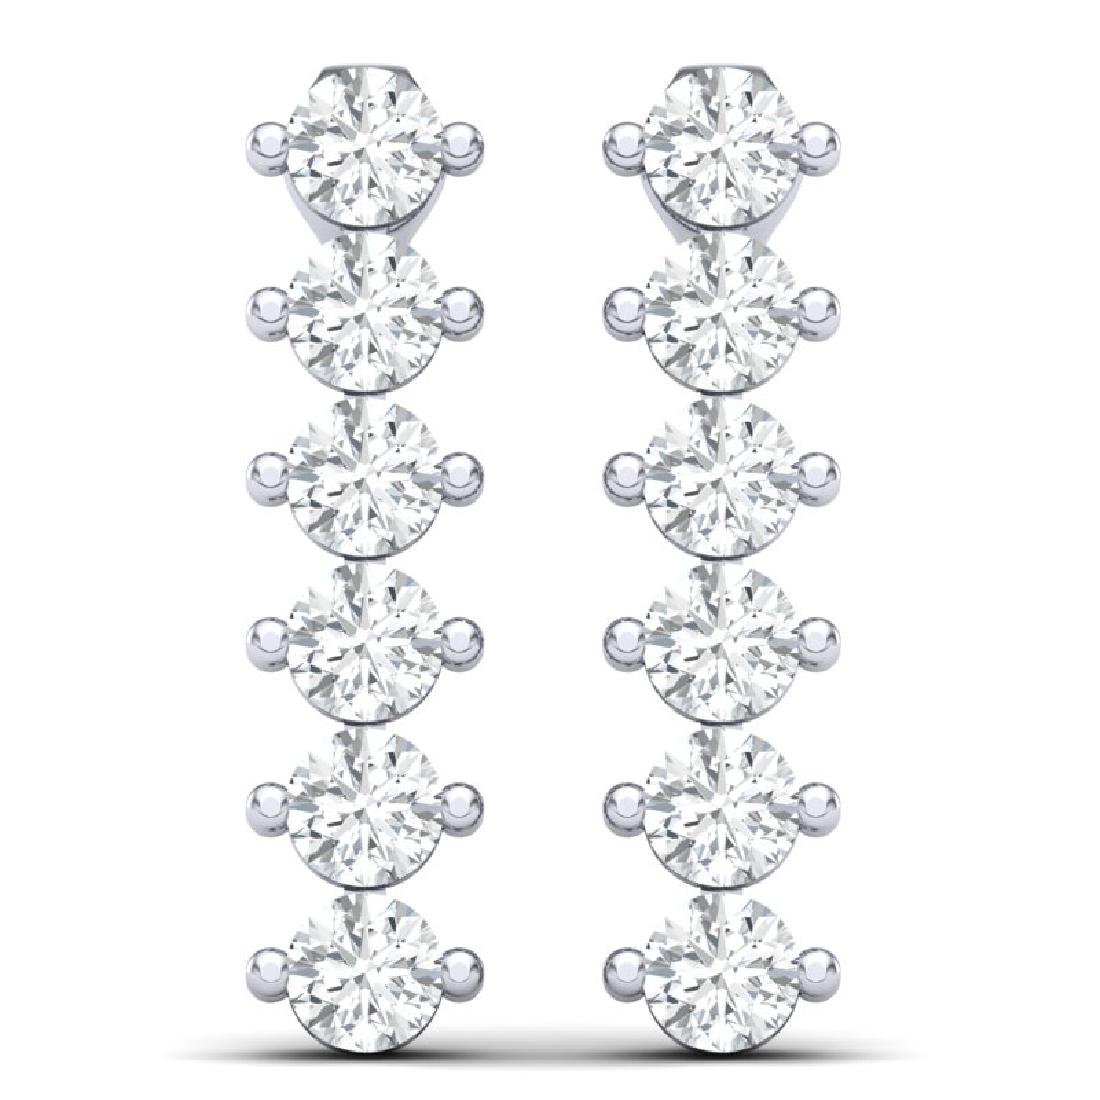 3 CTW Certified VS/SI Diamond Earrings 18K White Gold - 3